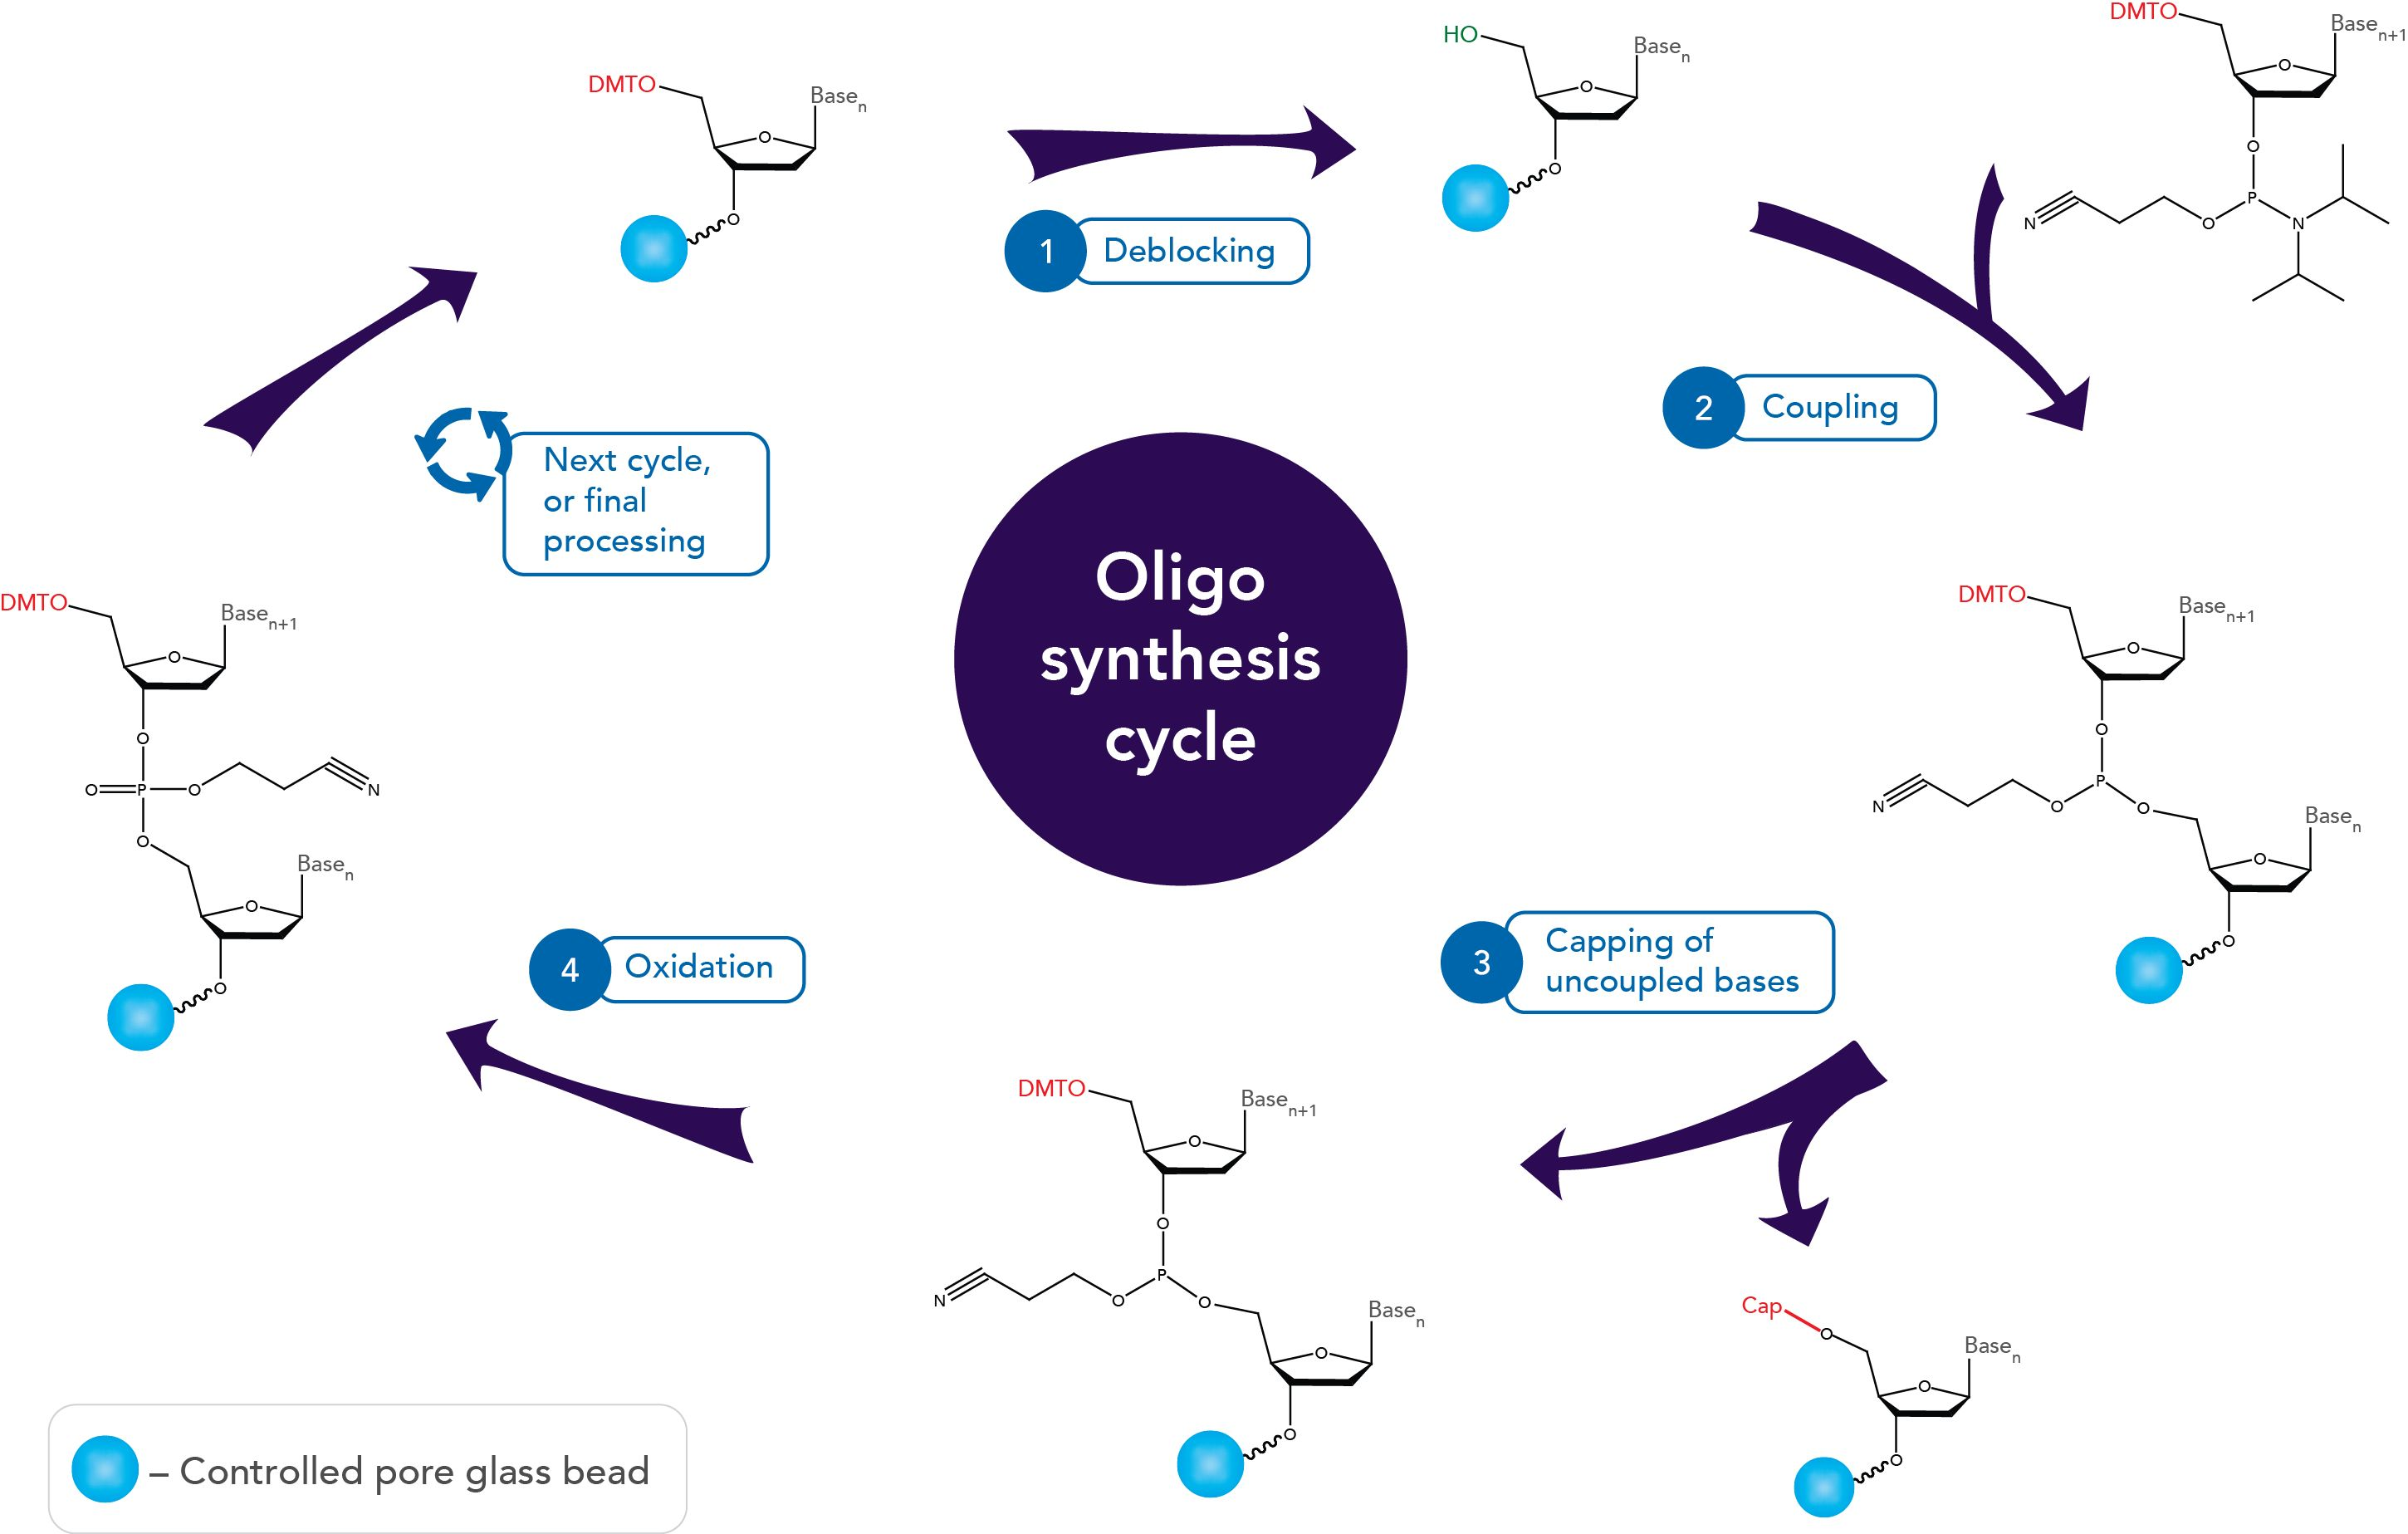 Phosphoramidite oligo synthesis